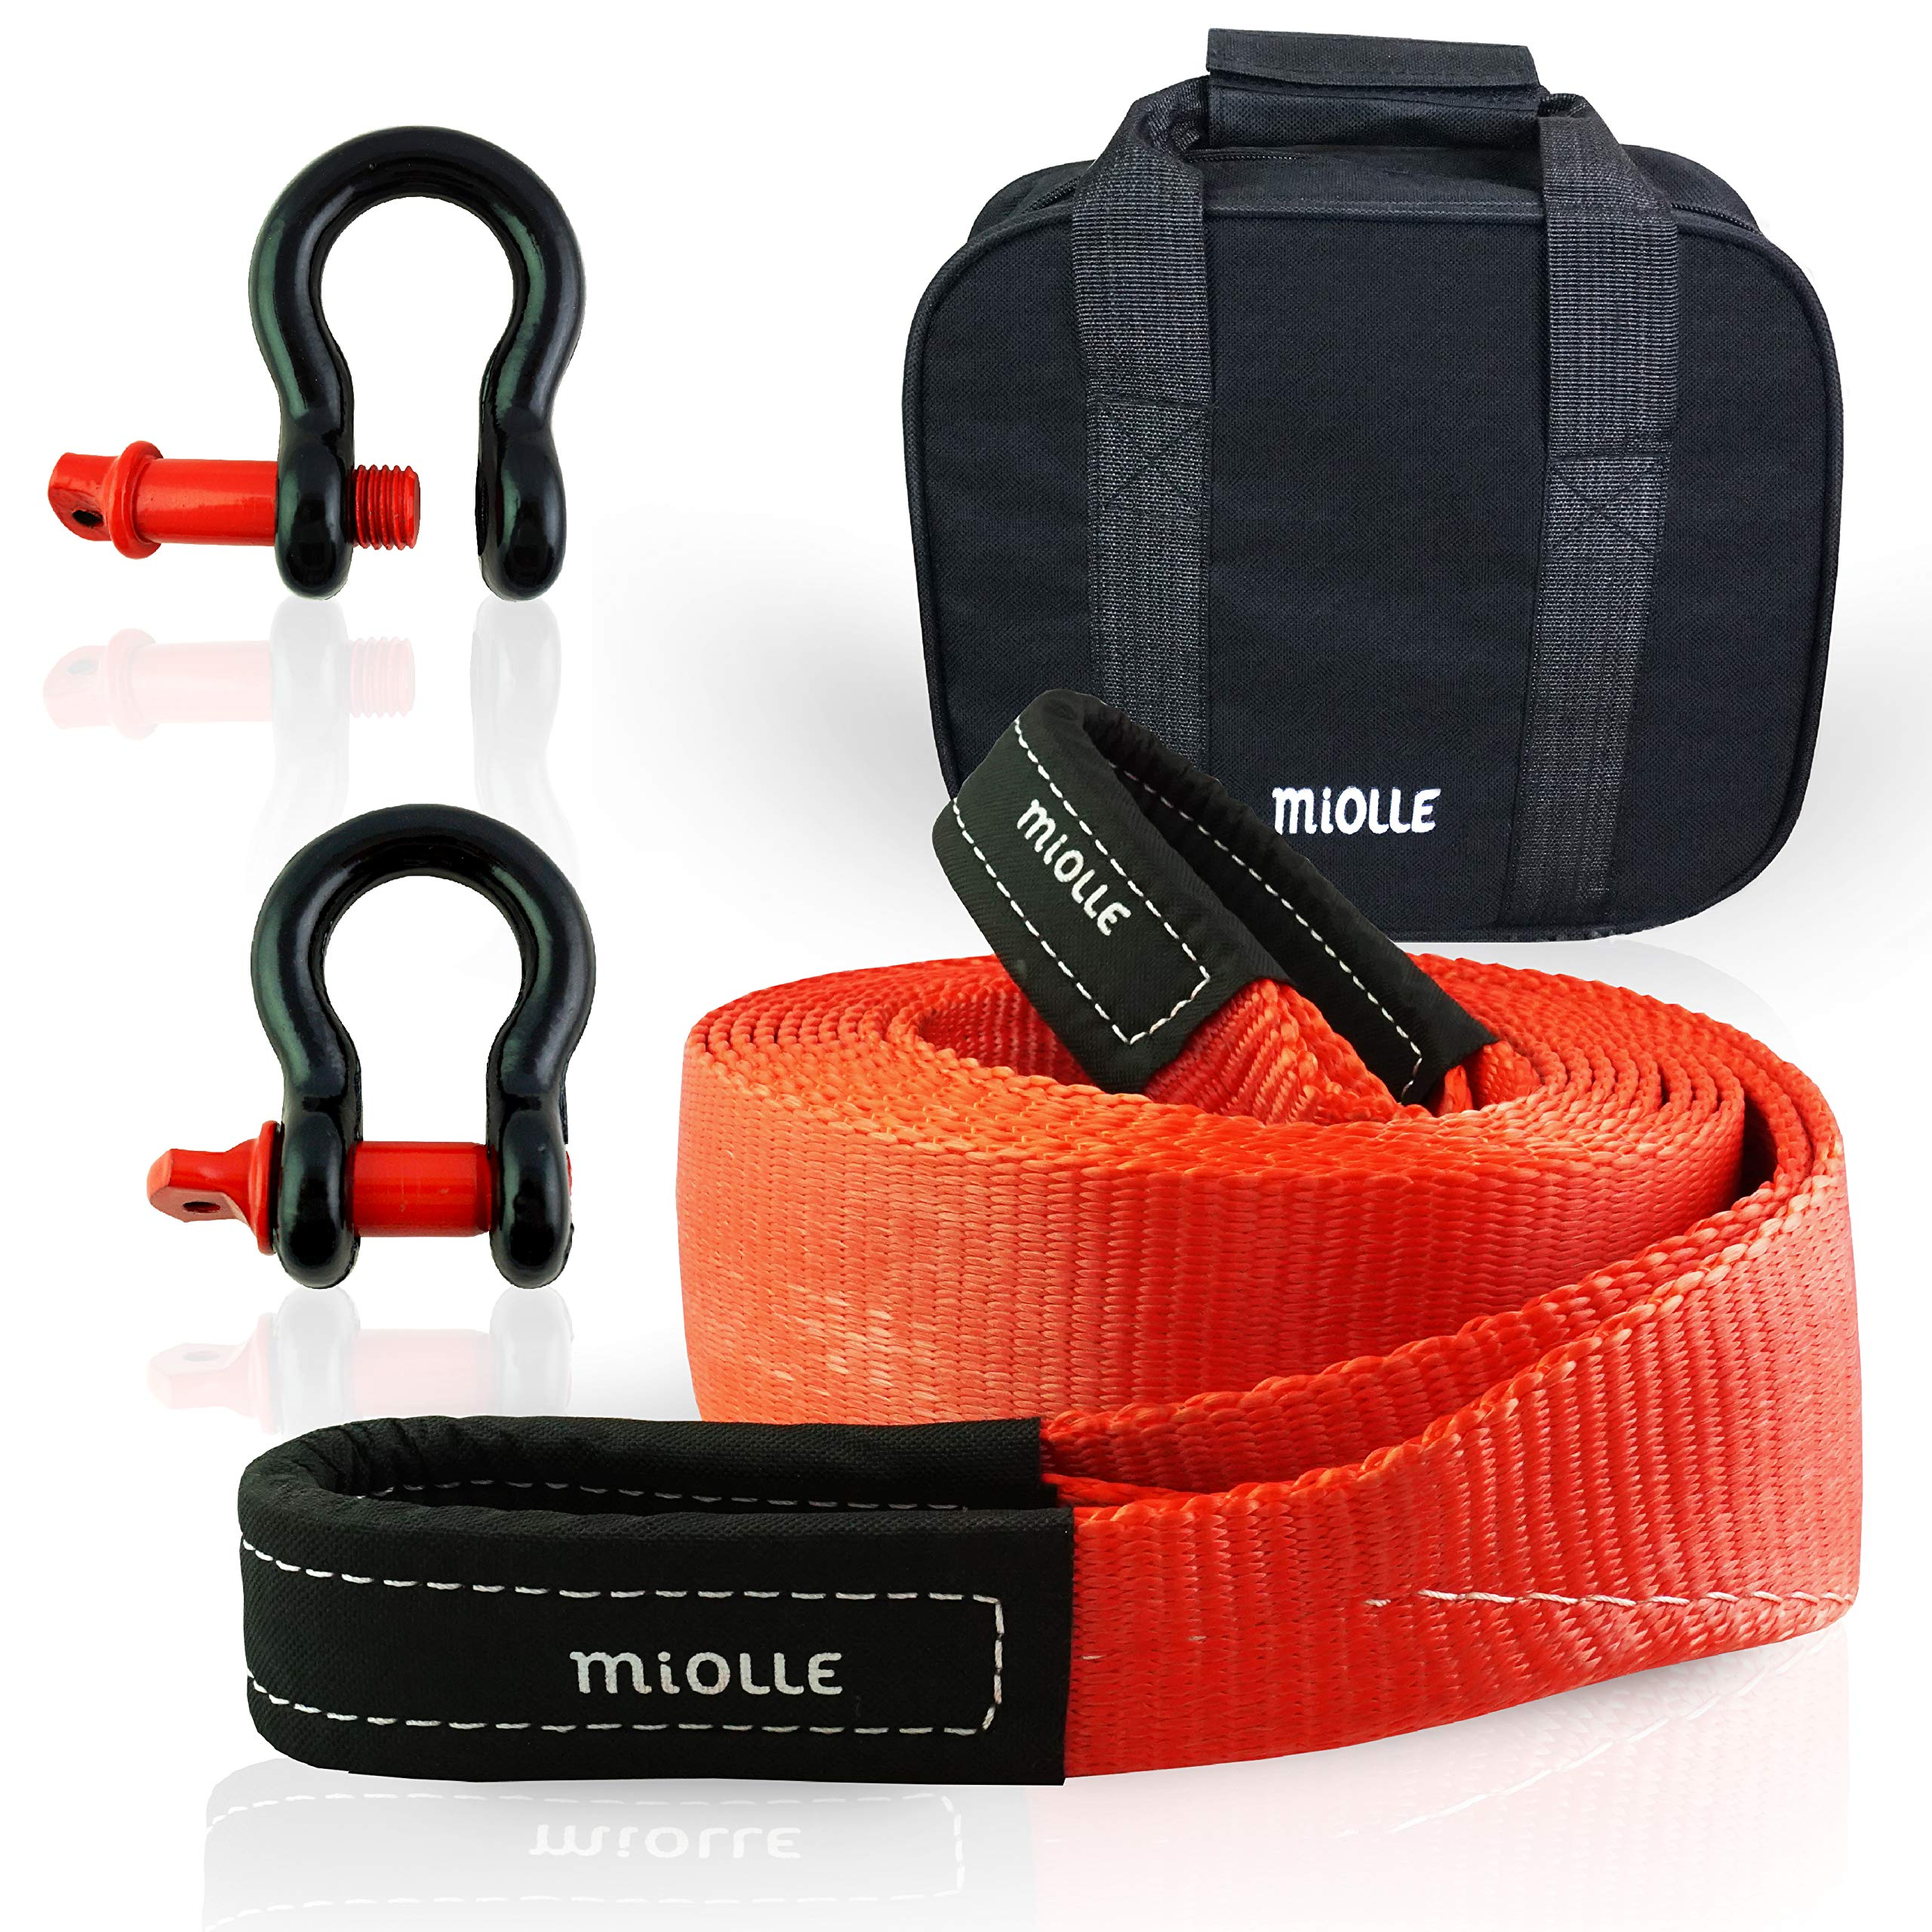 Miolle Tow Strap 3''x20' (30000lb) with Loops and D-Hook Shackles - Recovery Rope Heavy Duty - Towing Straps - Snatch Ropes for Truck and Car by Miolle